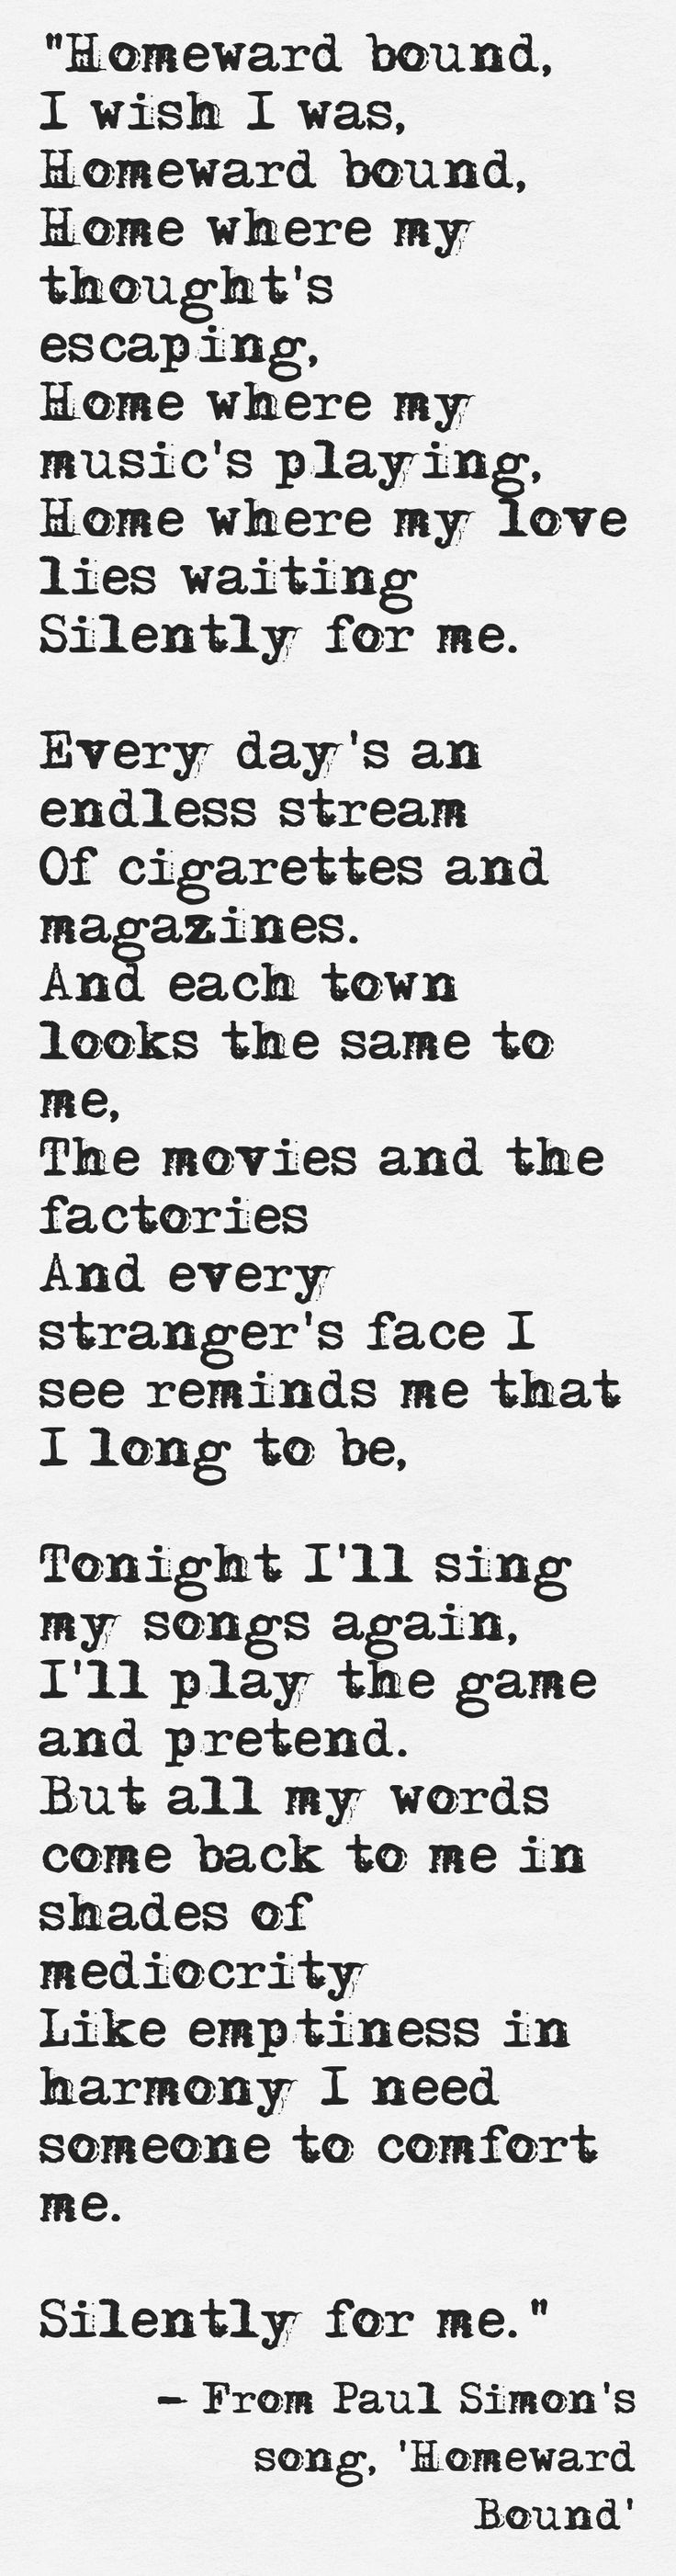 Lyrics from Paul Simon's song, 'Homeward Bound'